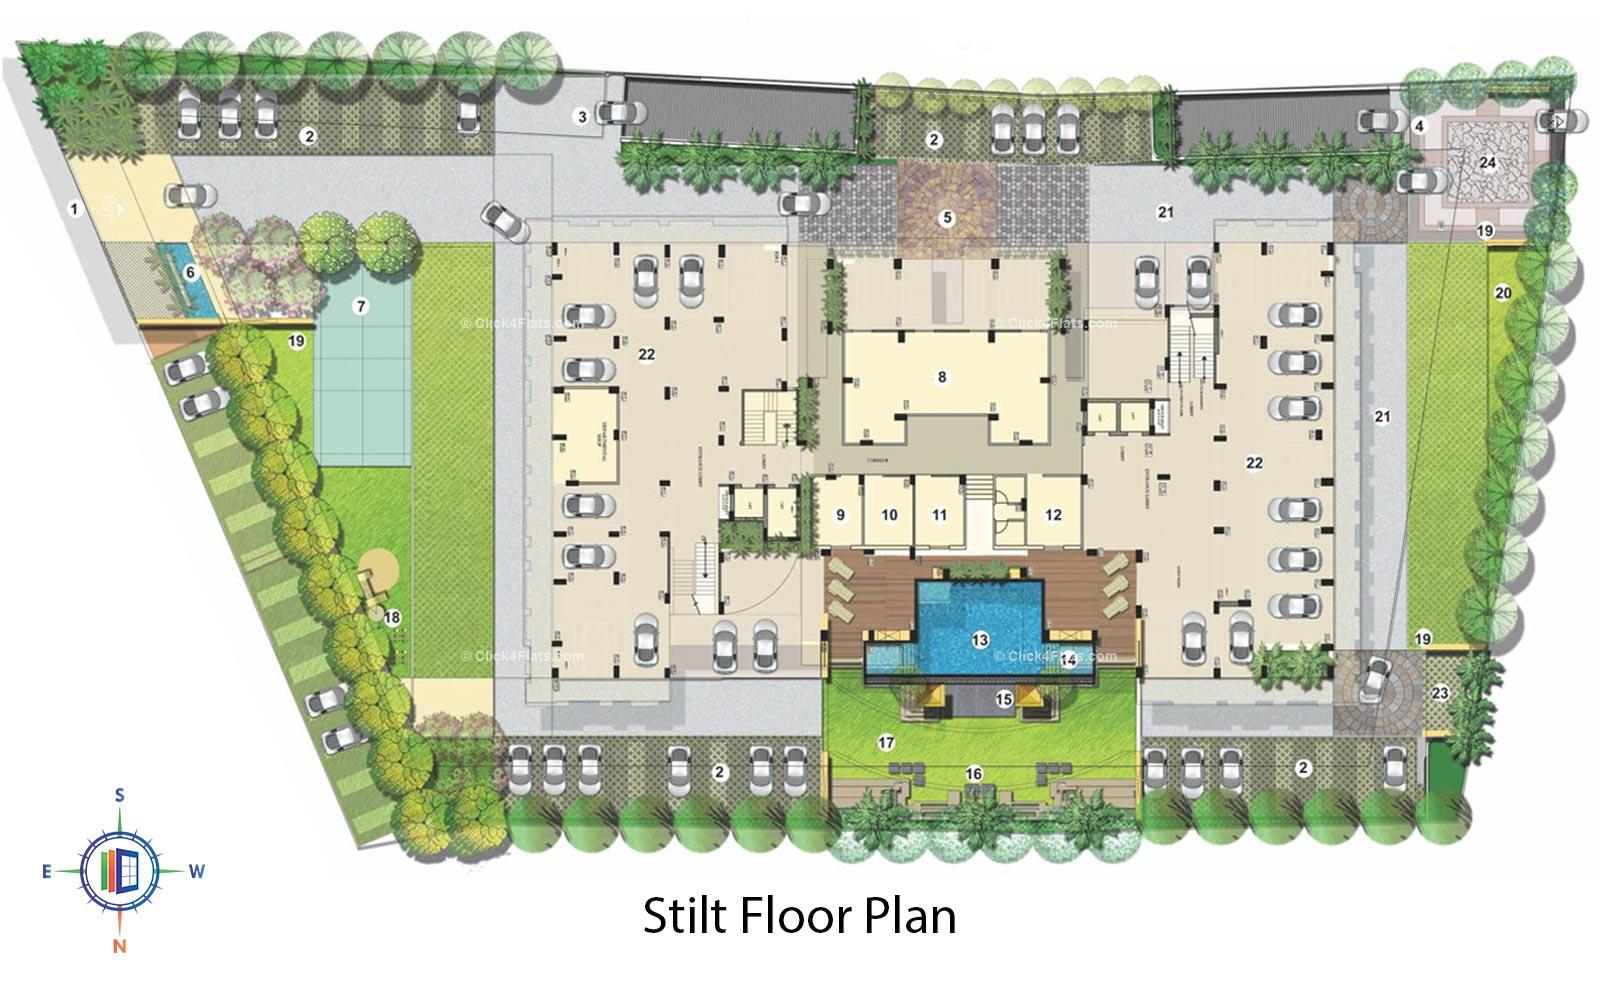 Kediaz Corporate Club Stilt Floor Plan